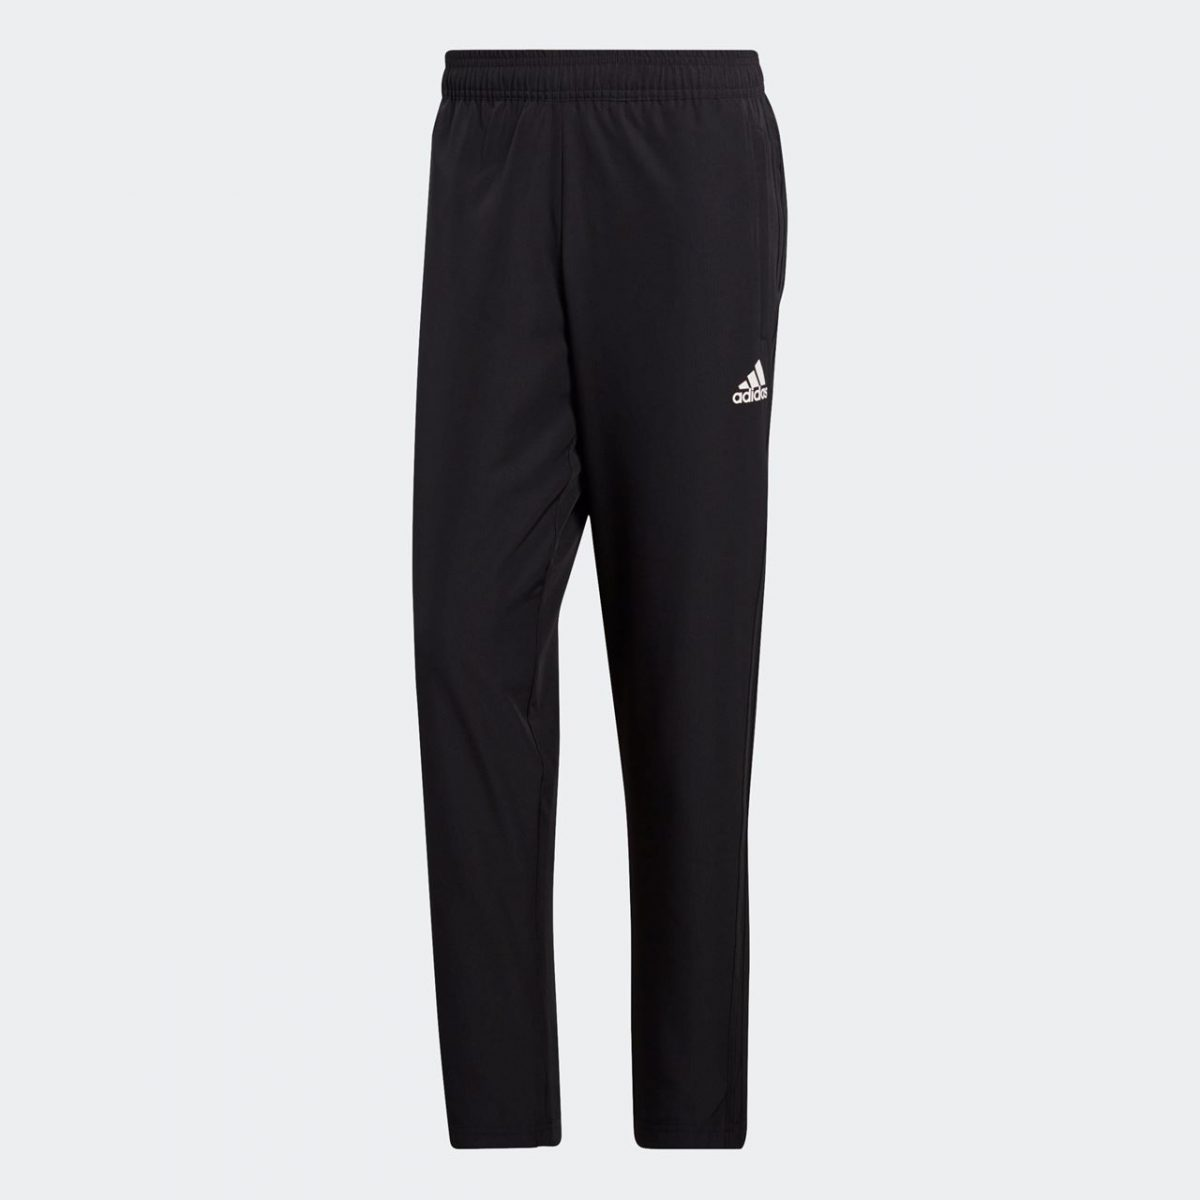 Adidas Condivo 18 Woven Pant Youth